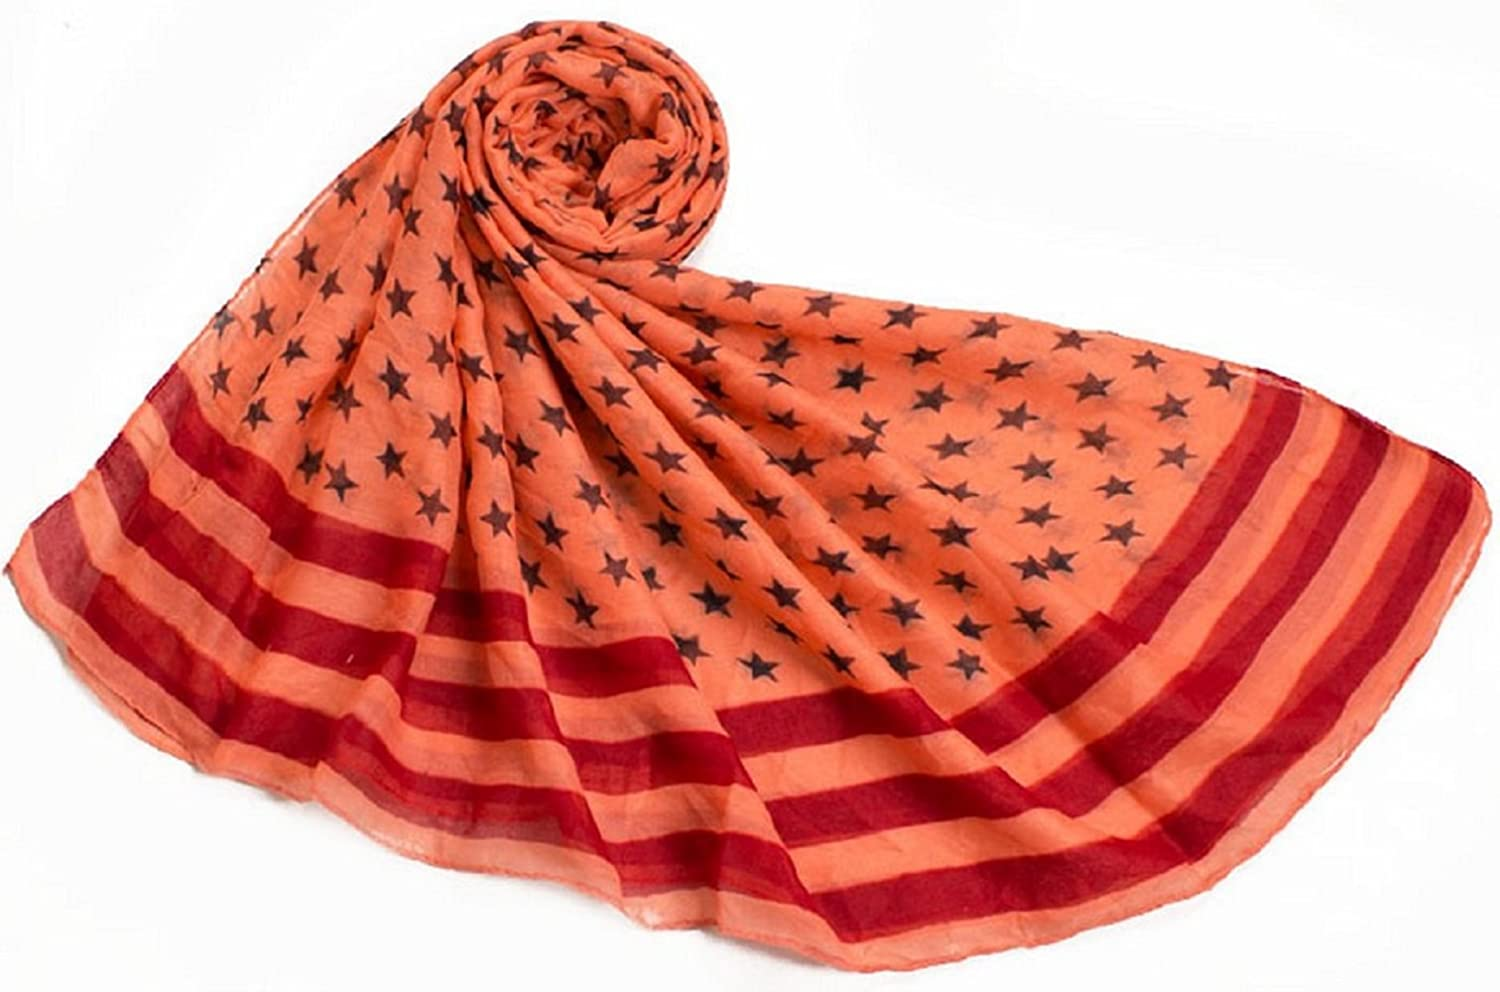 Bettyhome Fashion Girls Multicolor Star Pattern Voile Women's Large Beach Scarf Shawl Lightweight